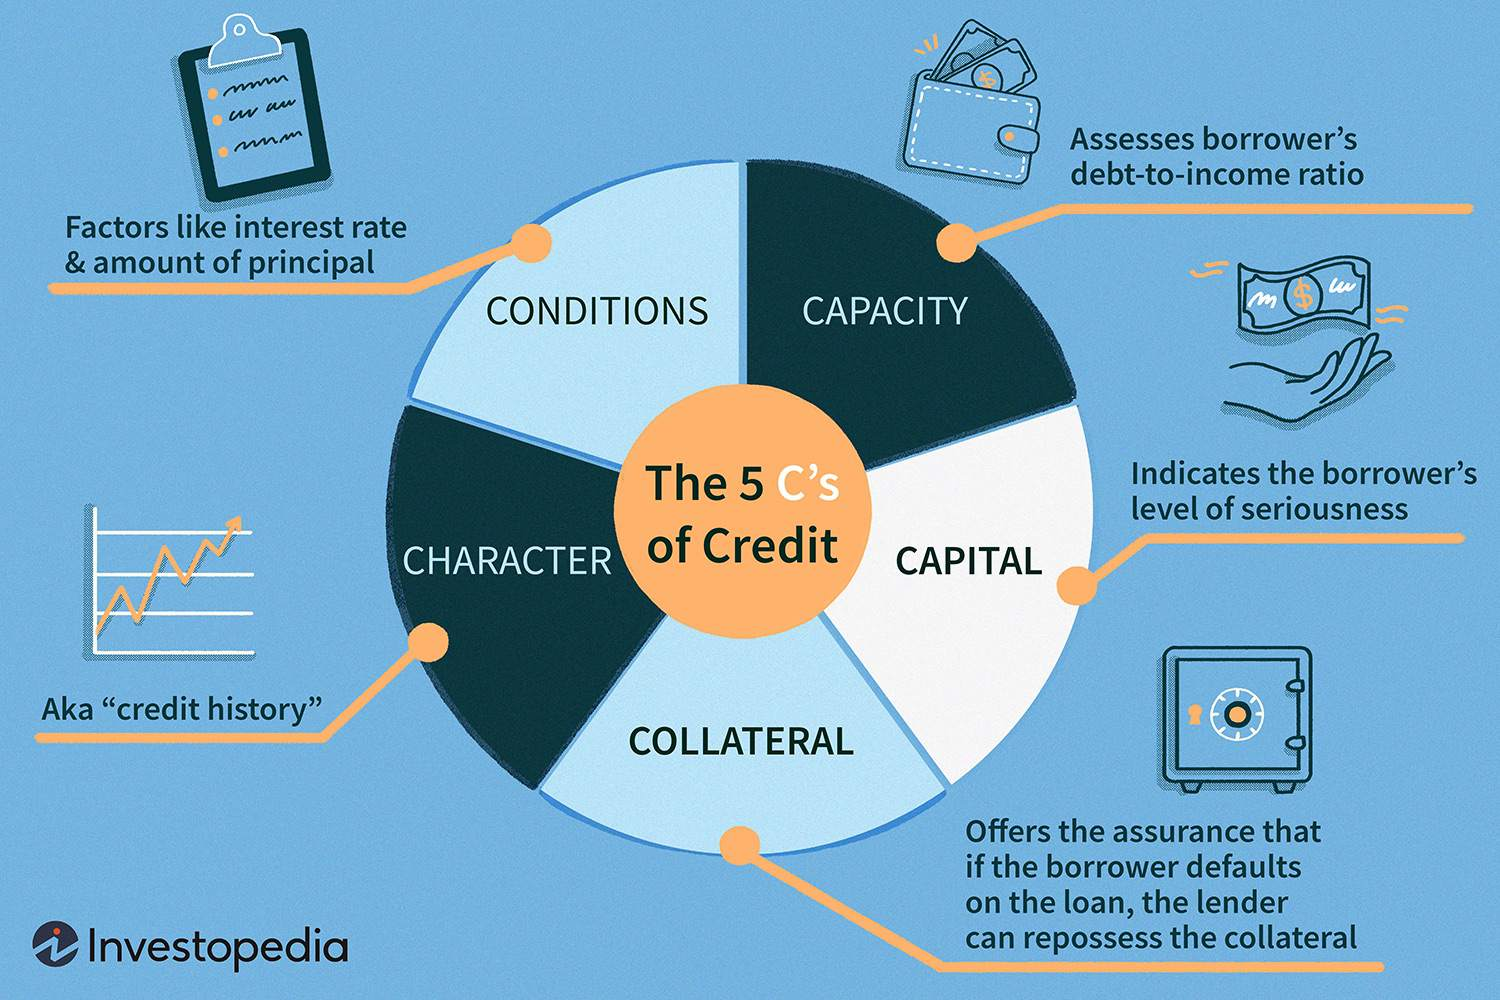 The 4 C's of Credit